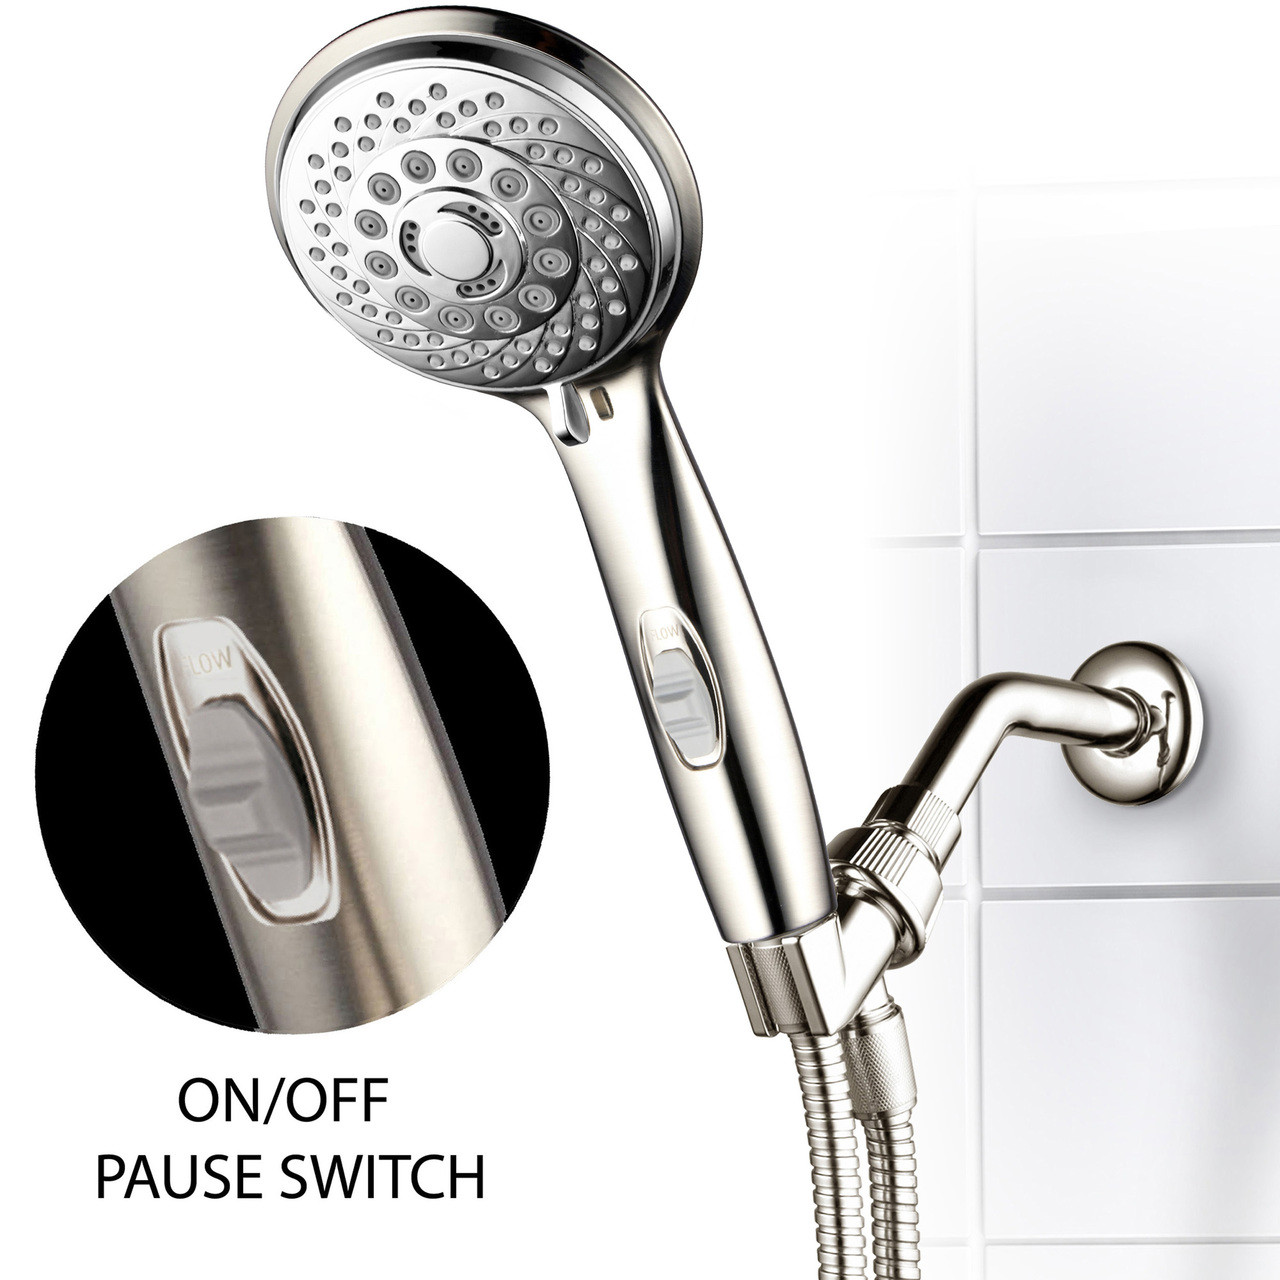 Hotel Spa 7 Setting Ultra Luxury Handheld Shower Head With Patented On Off Pause Switch Brushed Nickel Chrome